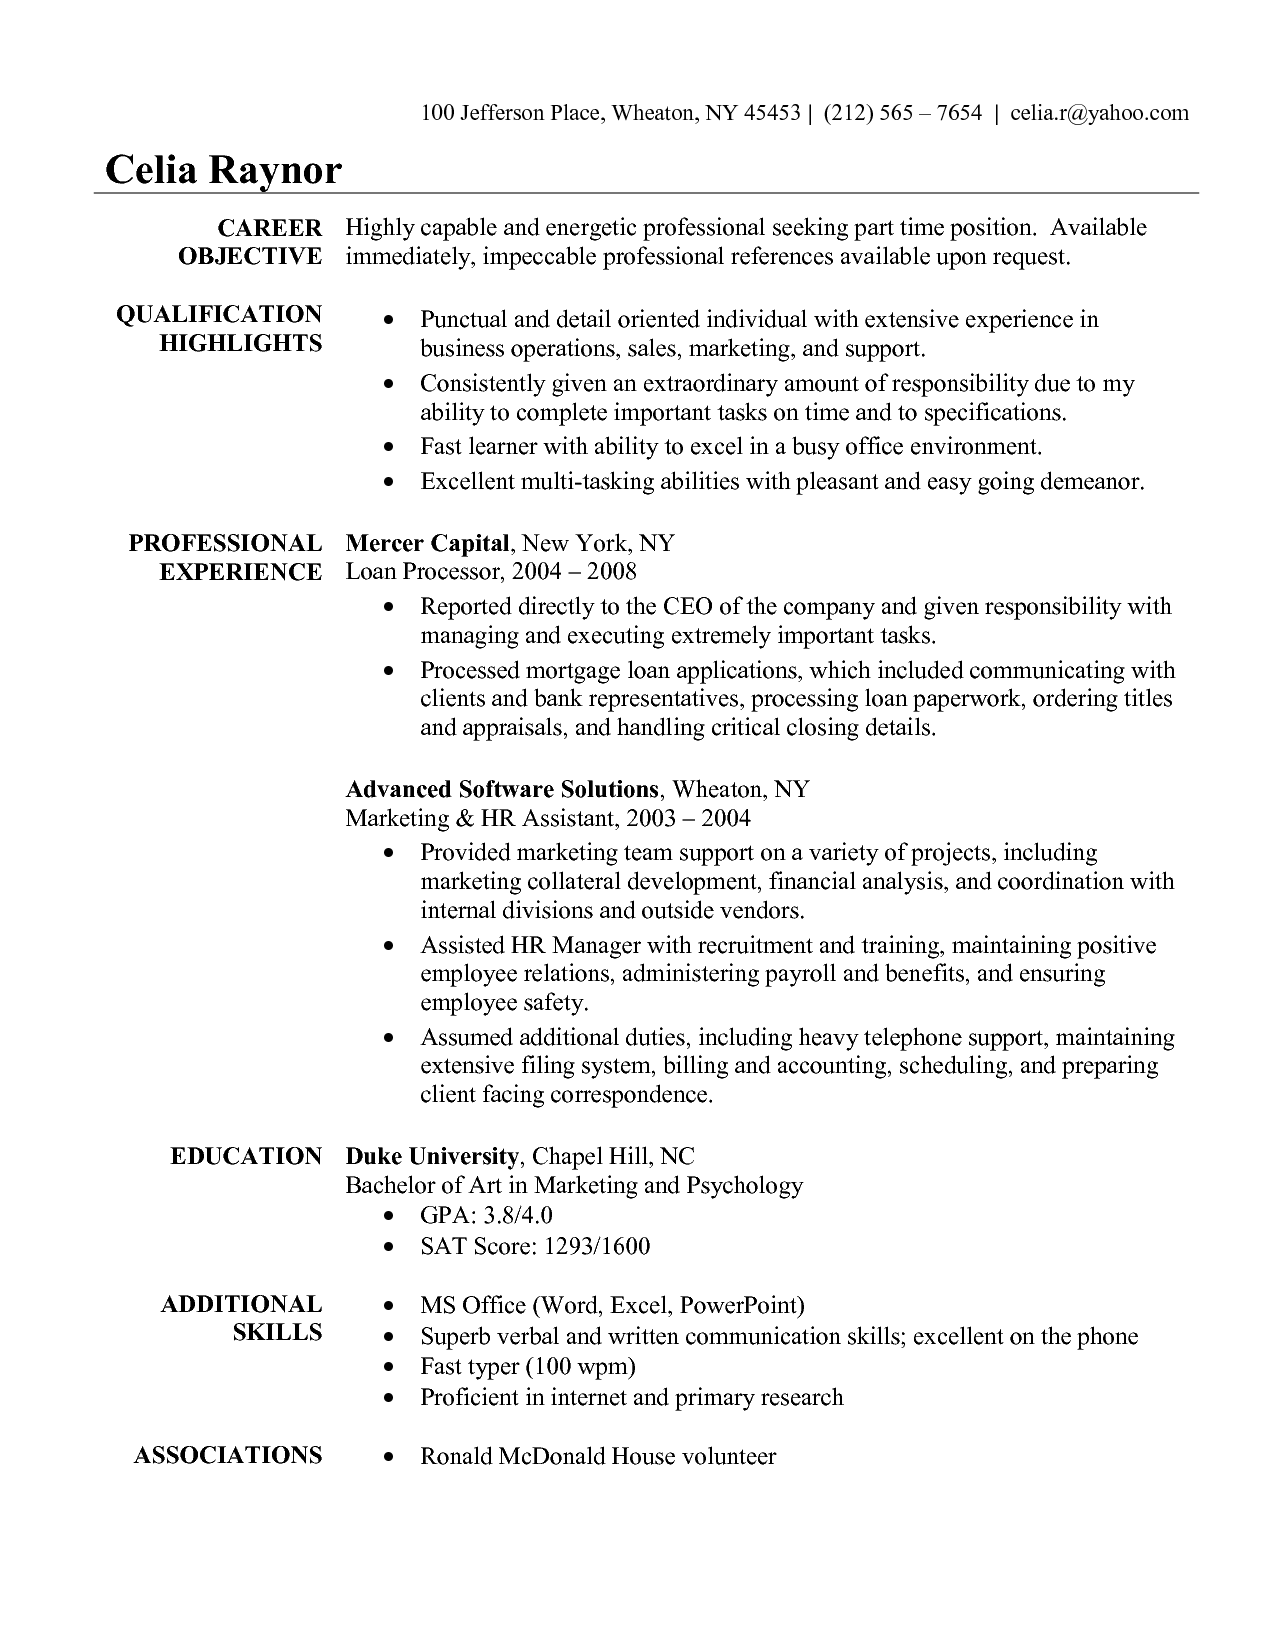 Administrative Secretary Resume Alluring Resume Sample For Administrative Assistant Resume Samples For .